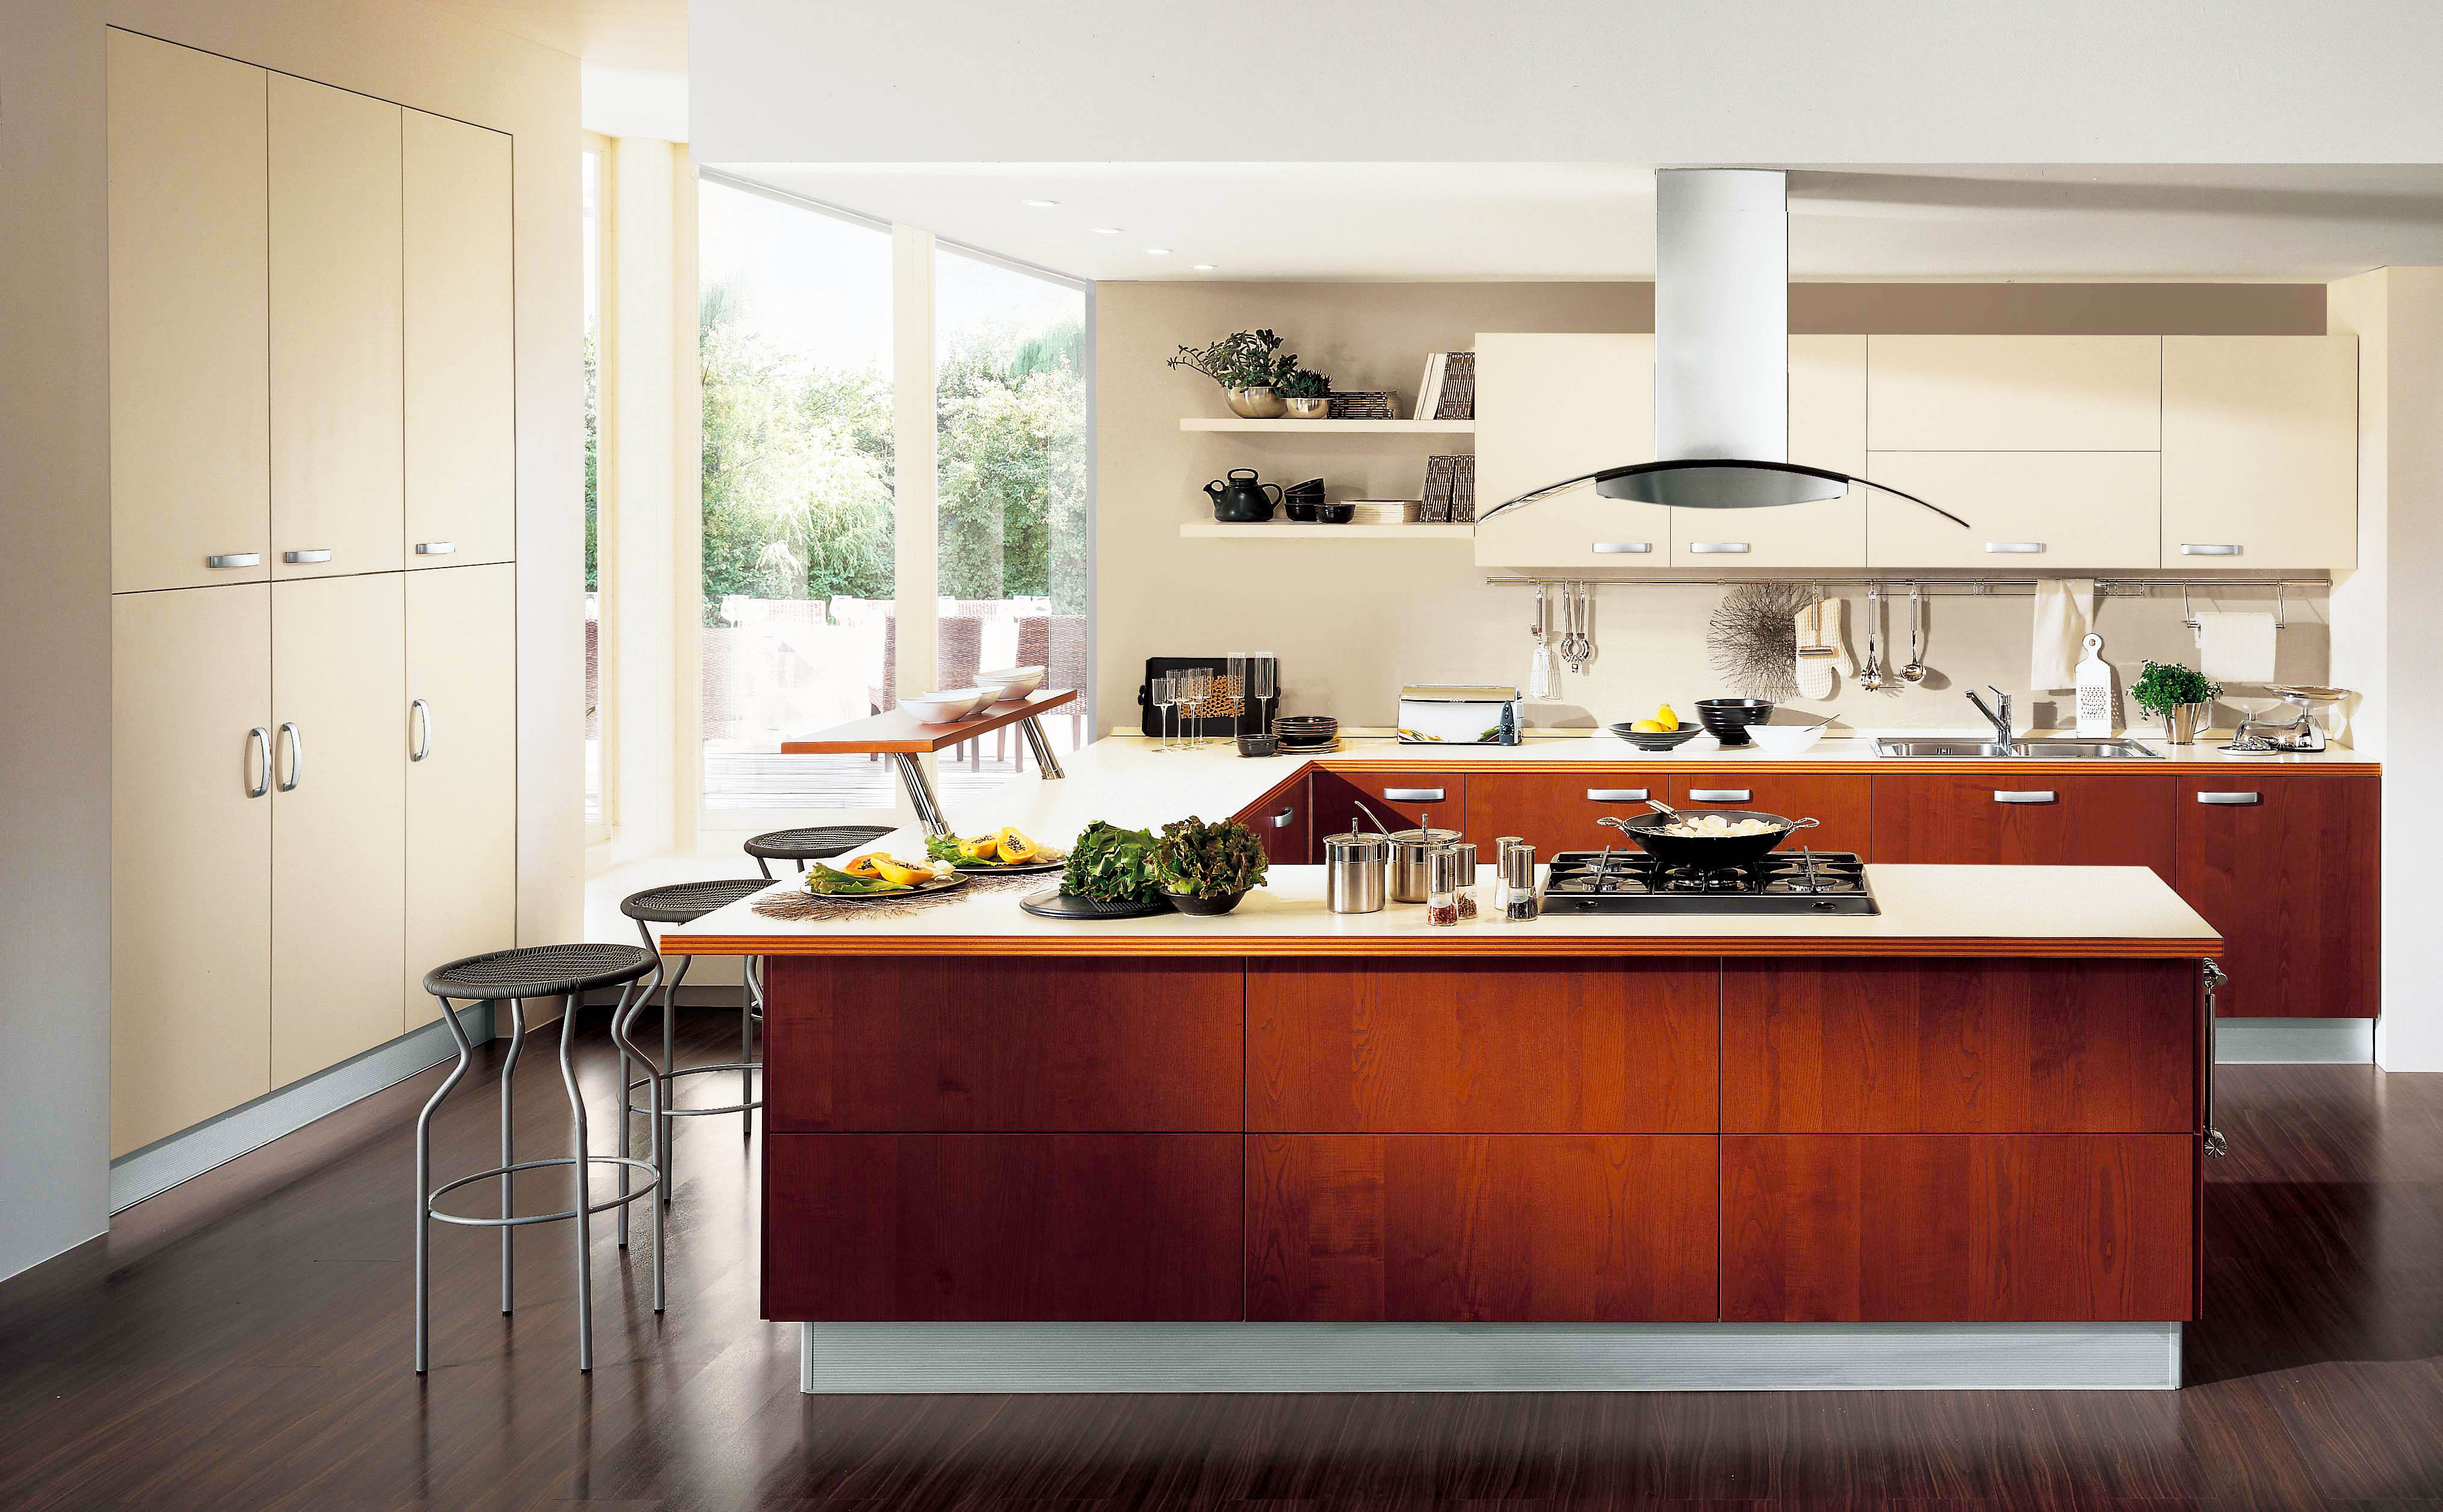 contemporary-kitchen-designs-withcool-contemporary-kitchen-cabinet-design-ideas-with-wooden-kitchen-island-also-window-and-U-shaped-kitchen-island-feats-high-tech-electric-stove-top